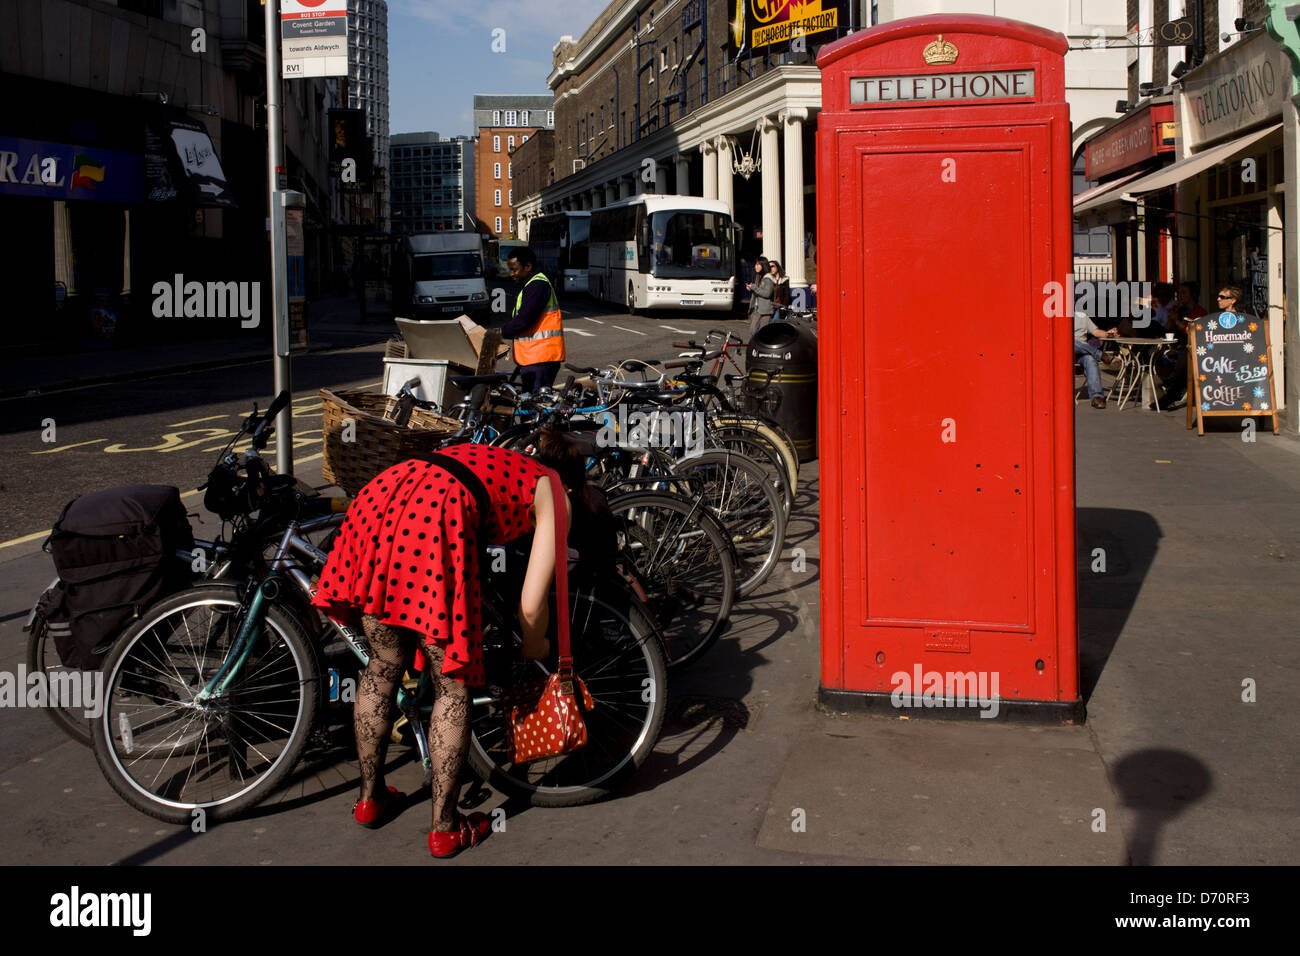 A lady wearing a red dress with black polka dots locks her bike near a red public telephone kiosk. - Stock Image